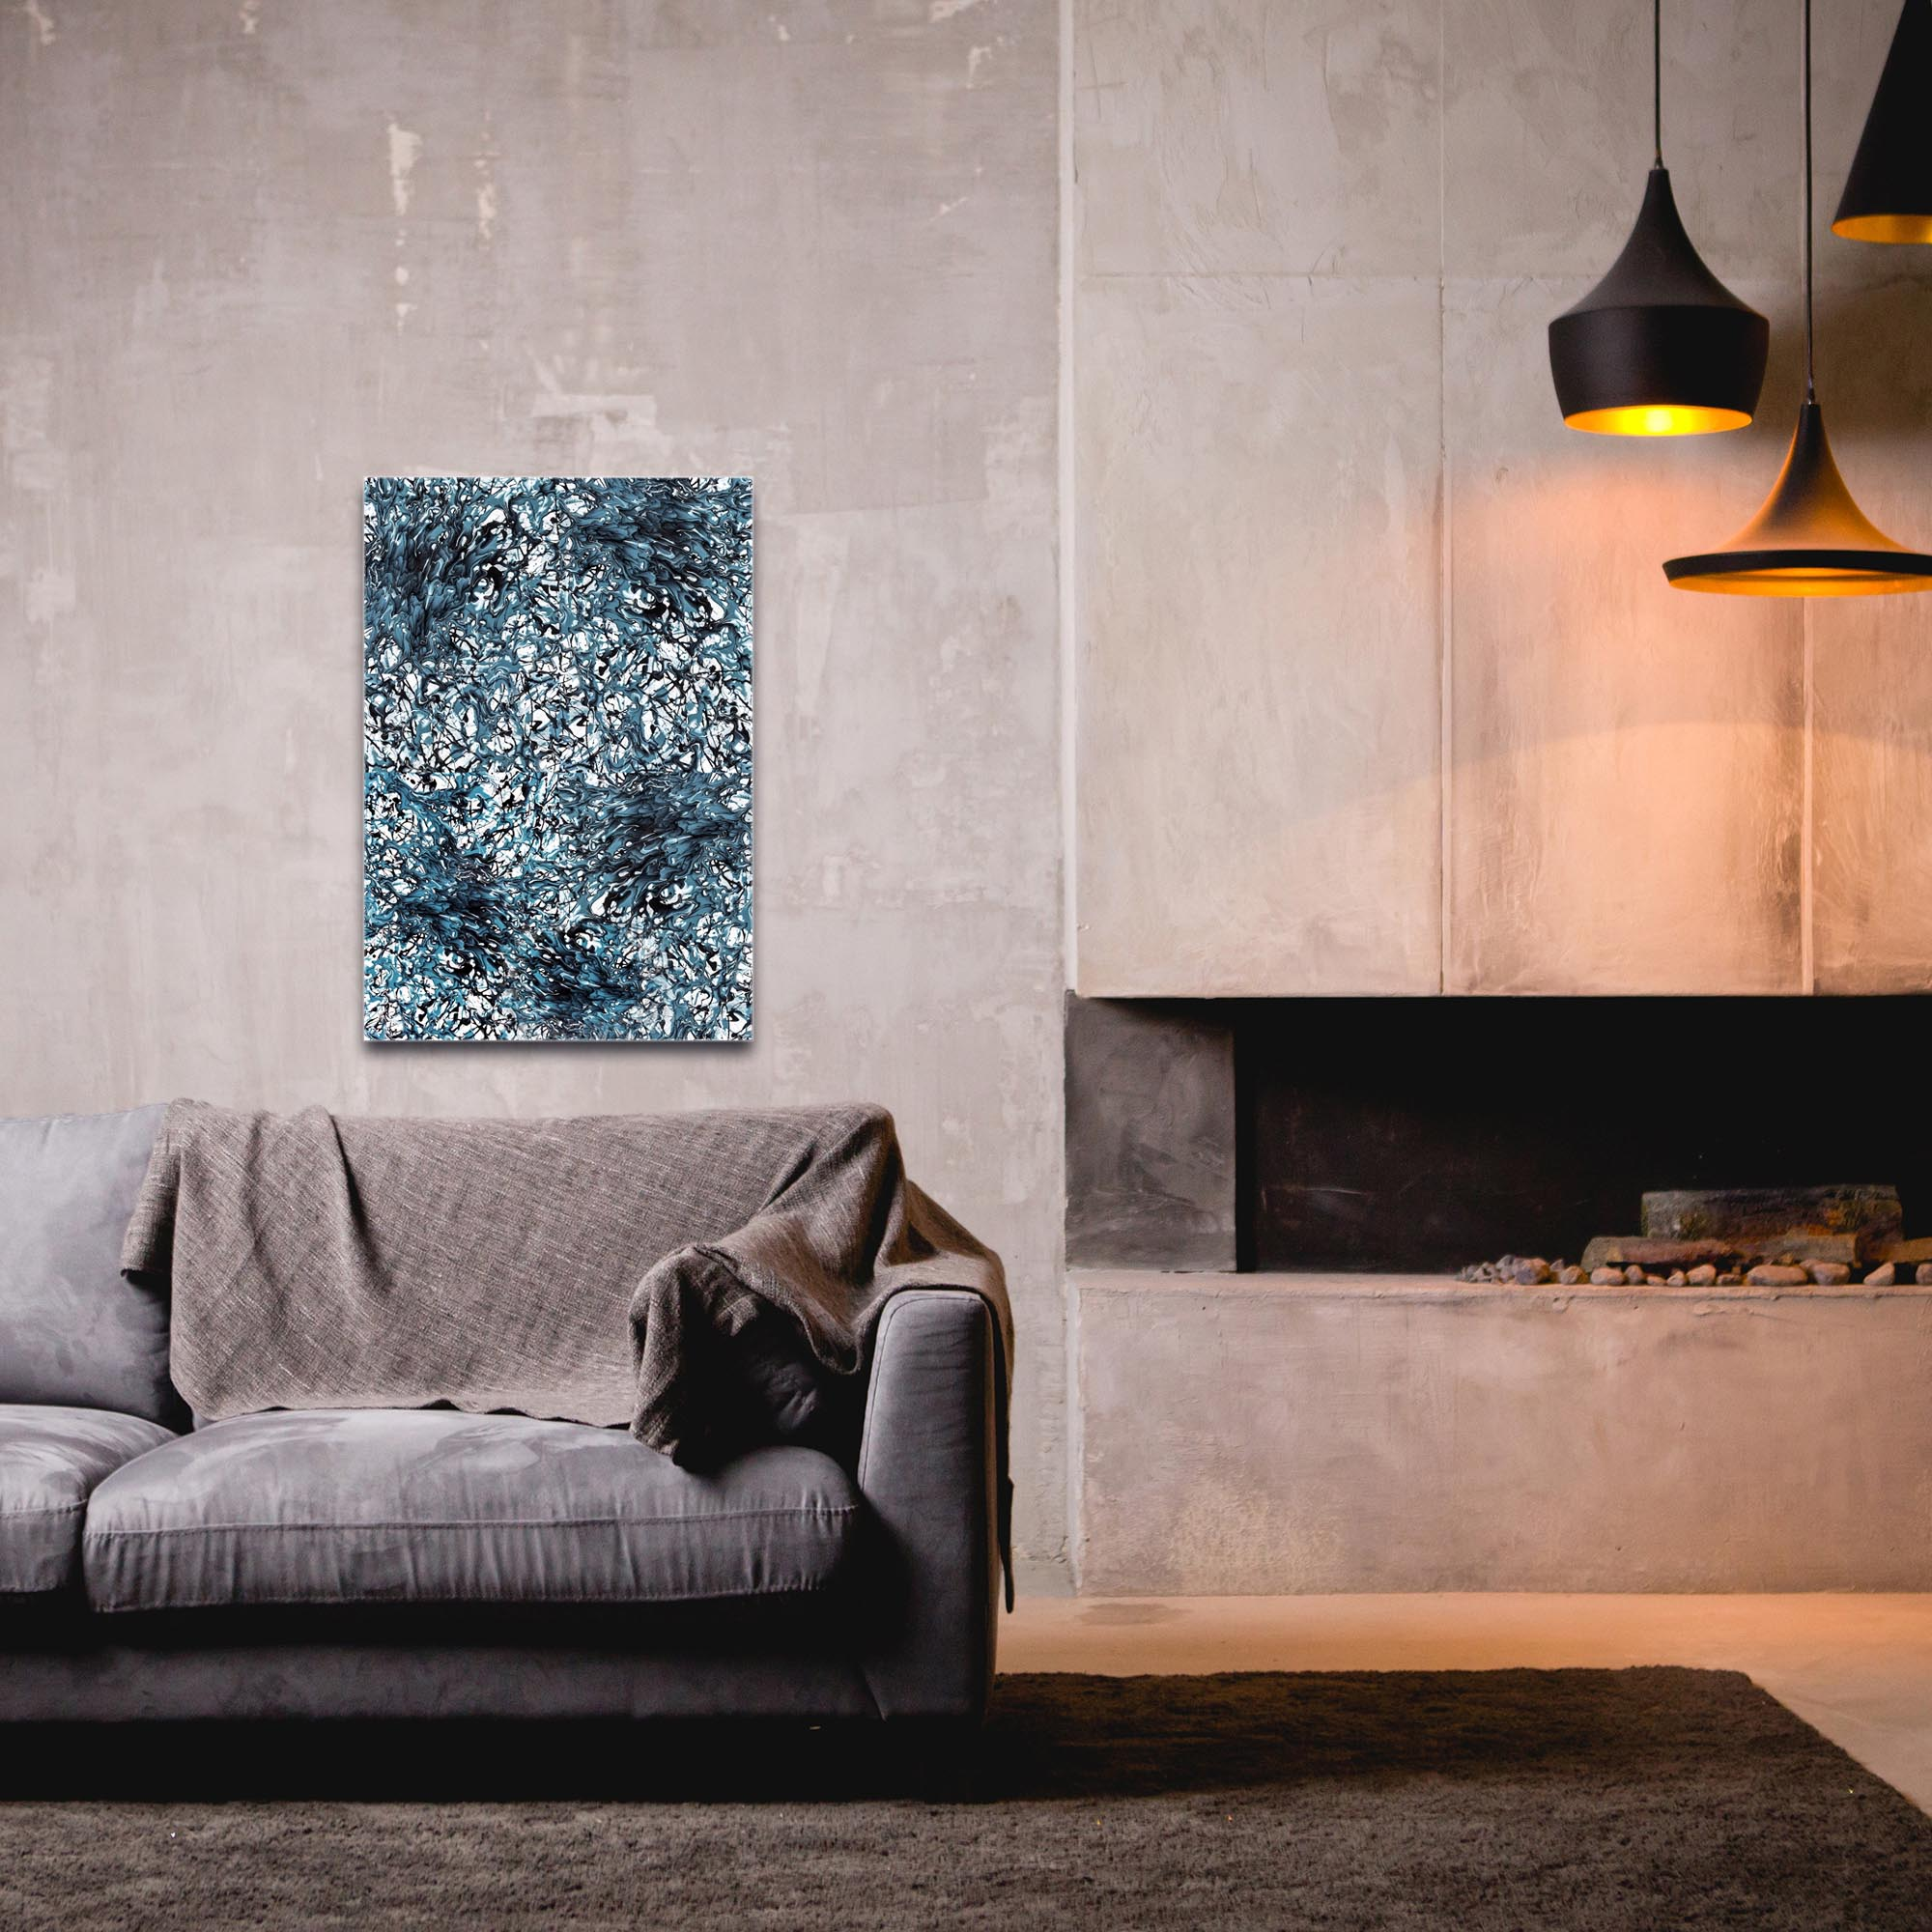 Abstract Wall Art 'Days of Grey 4 Quad' - Colorful Urban Decor on Metal or Plexiglass - Image 3